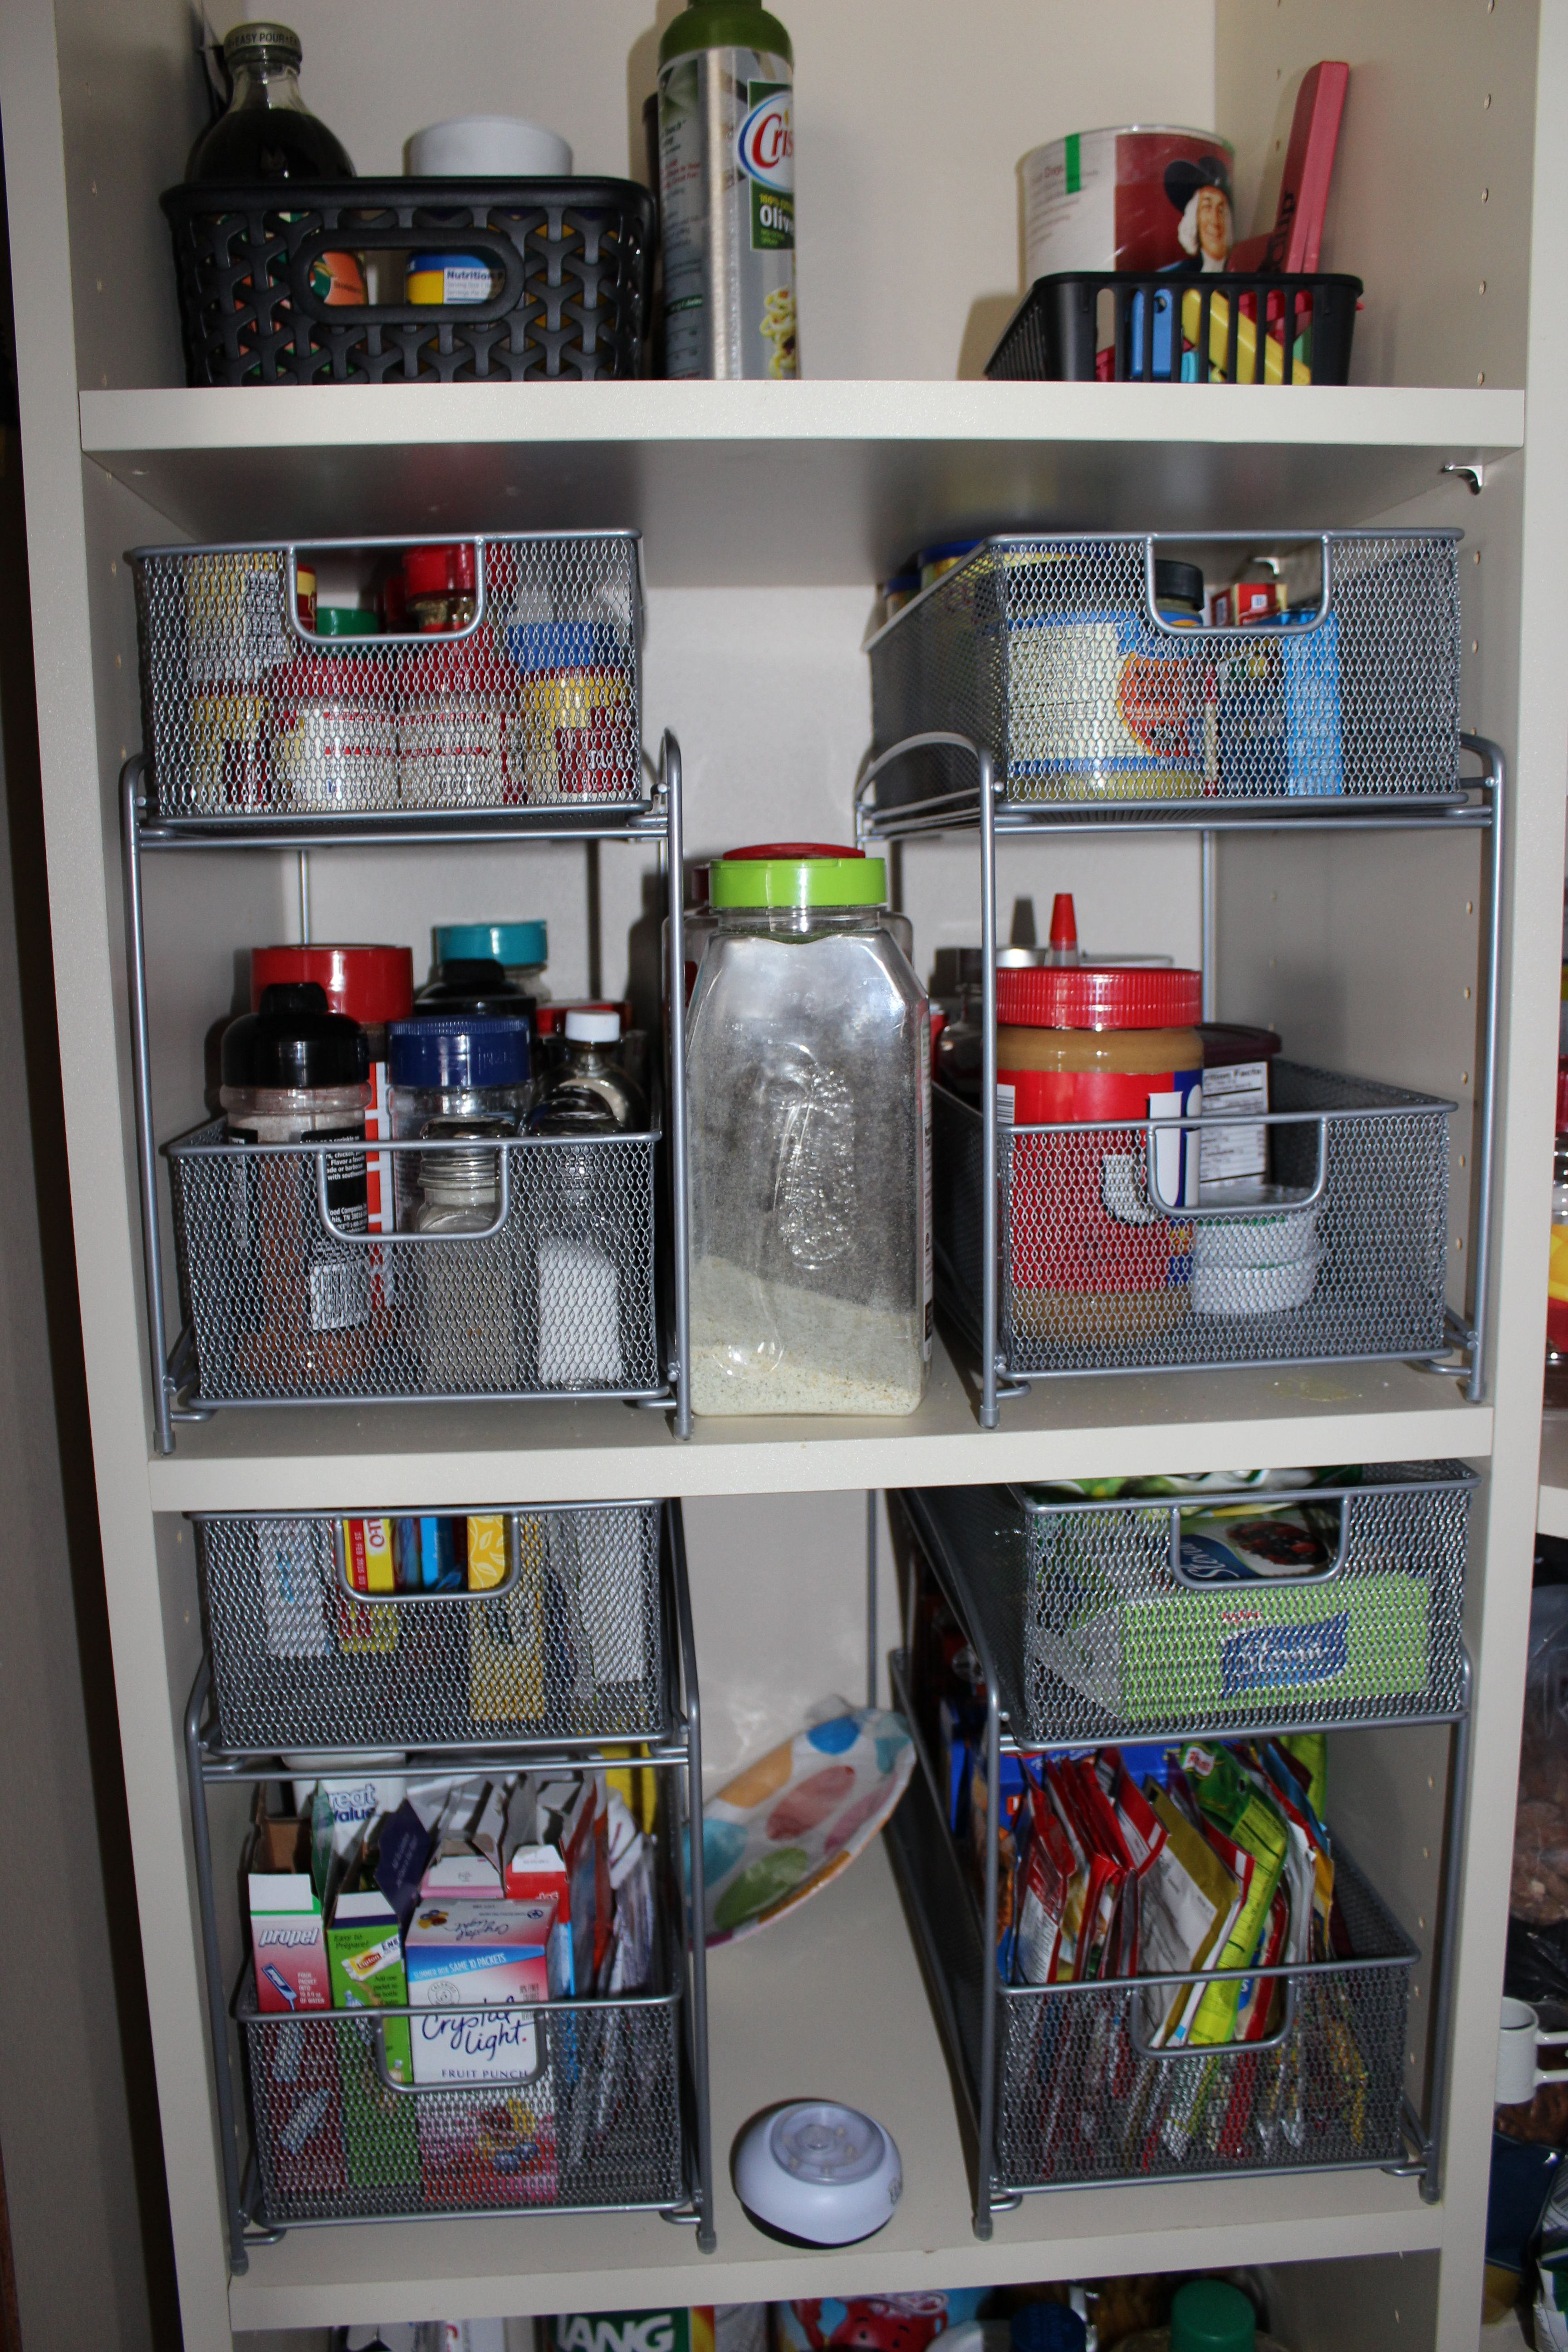 Organizers From Bed Bath And Beyond Worked Great For Those Pantry